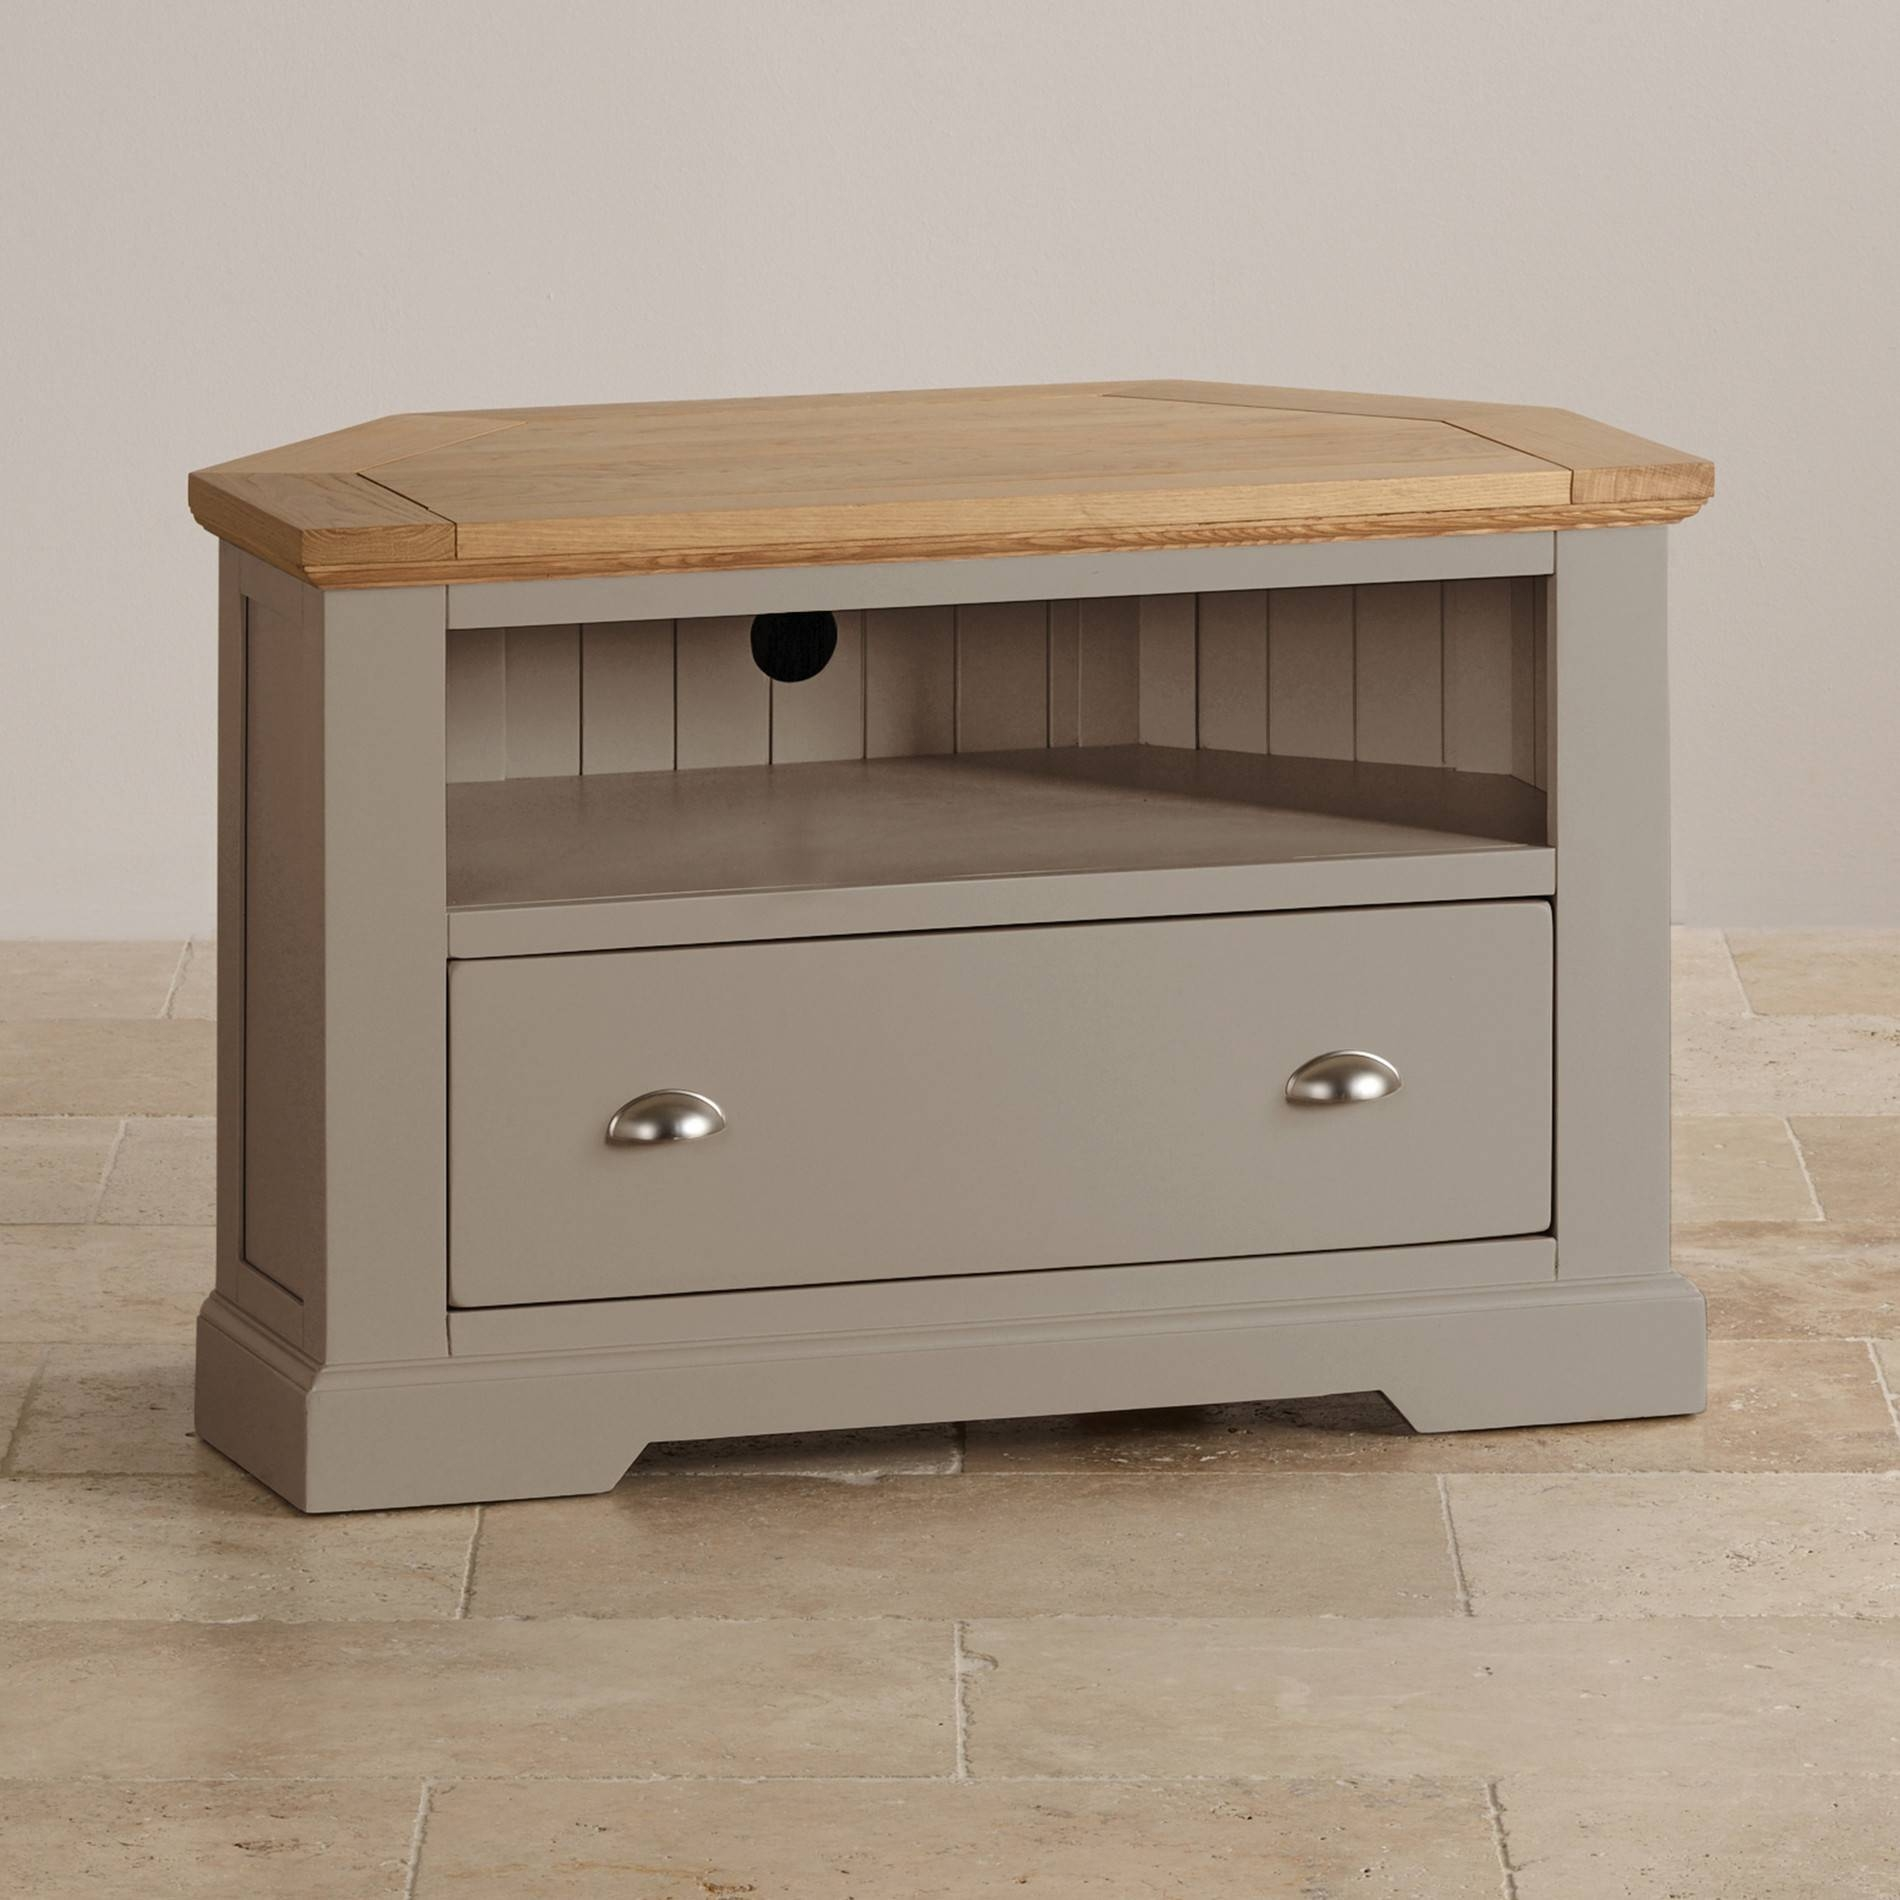 St Ives Corner Tv Unit In Grey Painted Acacia With Oak Top inside Small Corner Tv Cabinets (Image 13 of 15)